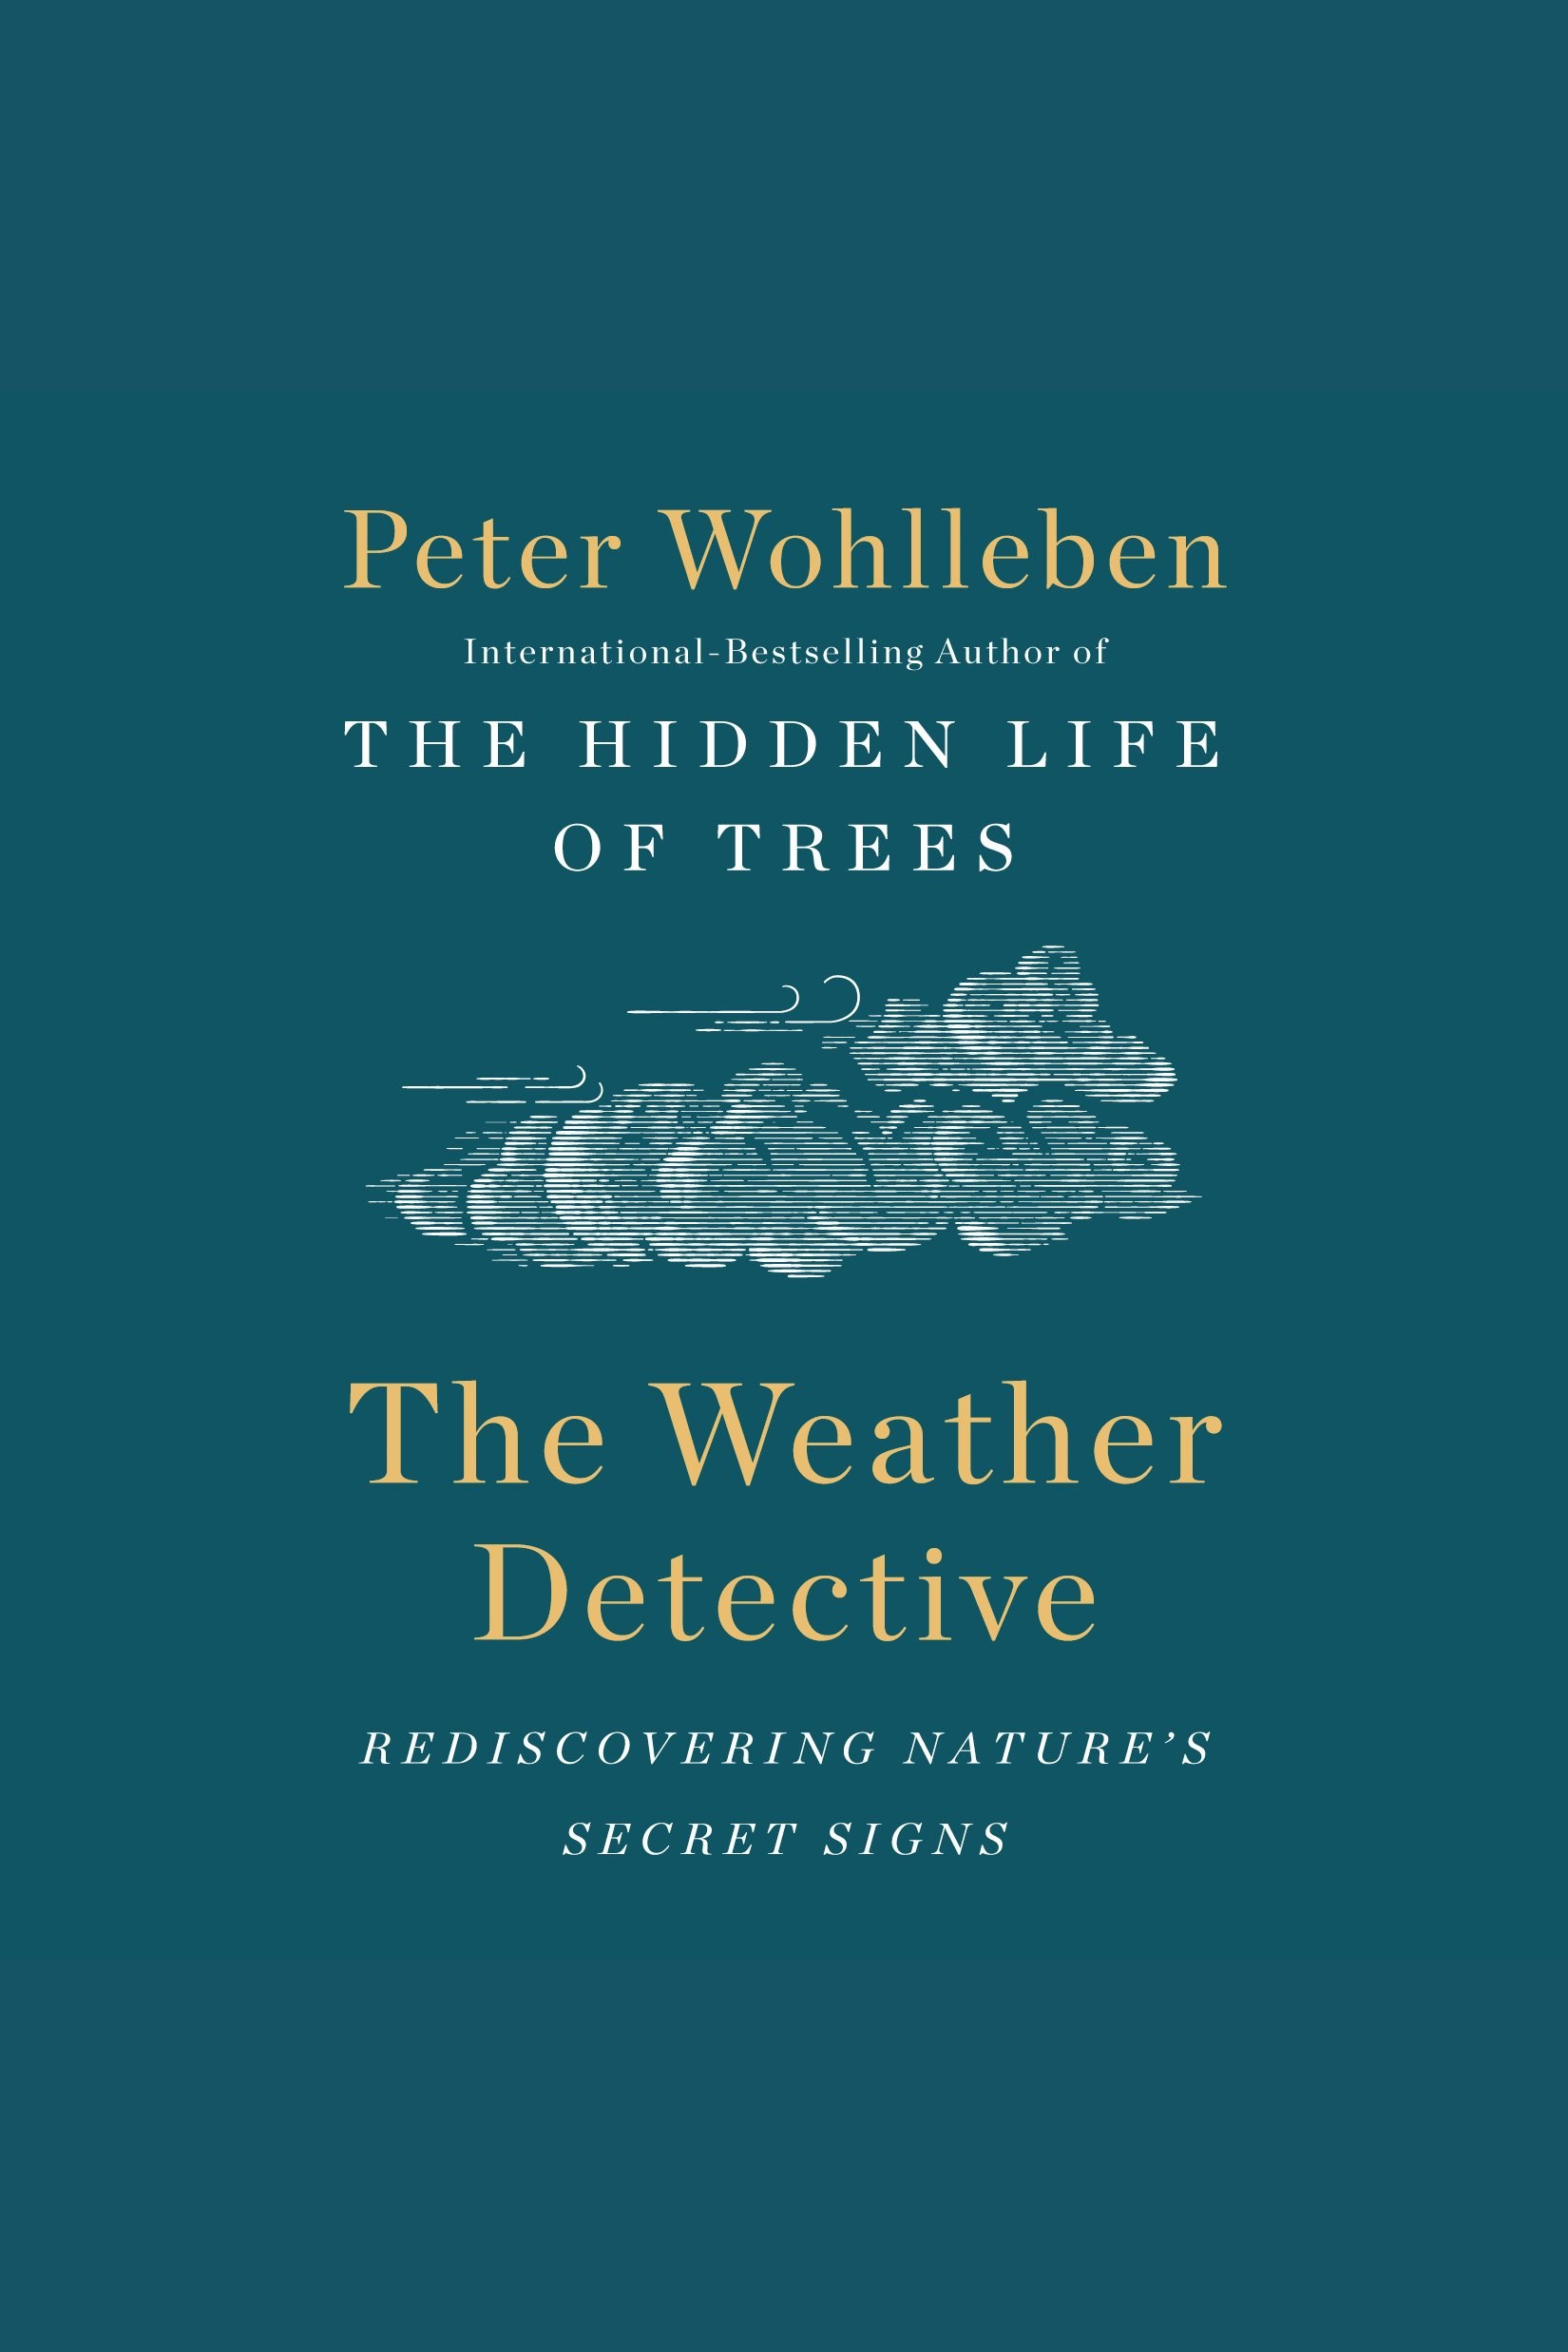 The Weather Detective Rediscovering Nature's Secret Signs